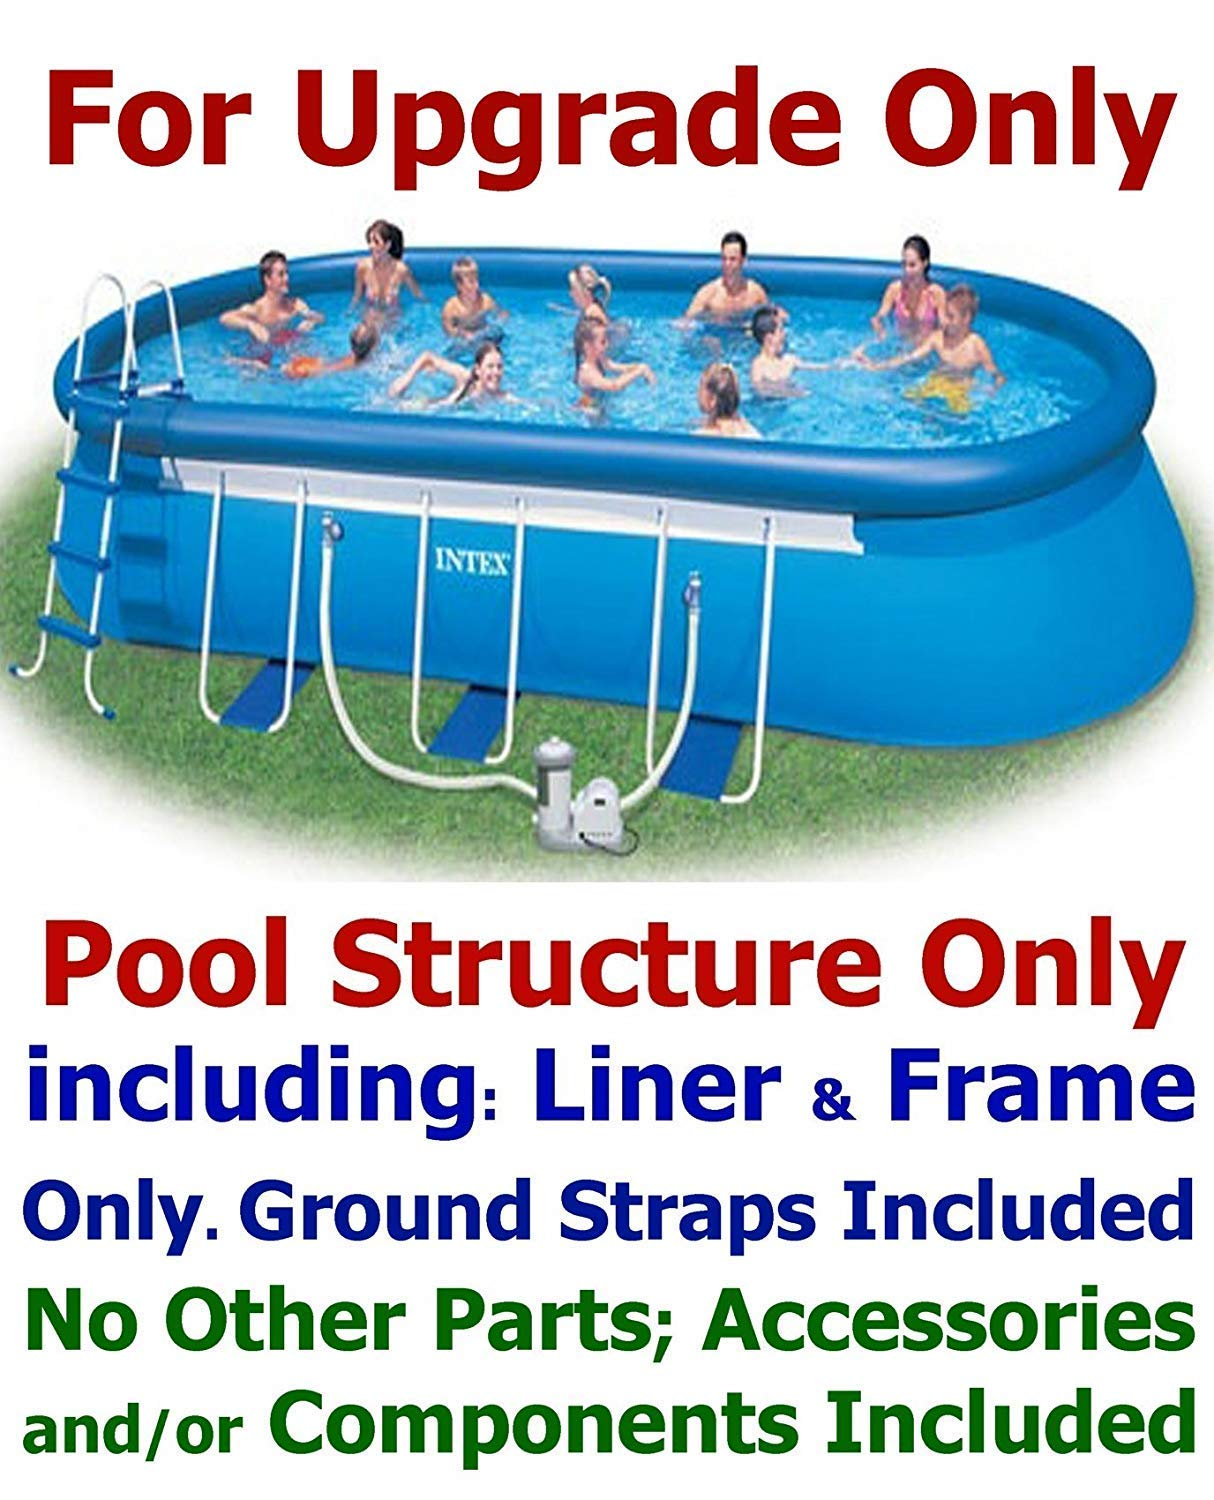 Intex 24' x 12' x 48'' Oval Ellipse Easy Frame Pool Set - Filter Pump & Hoses Not Included by Intex (Image #2)